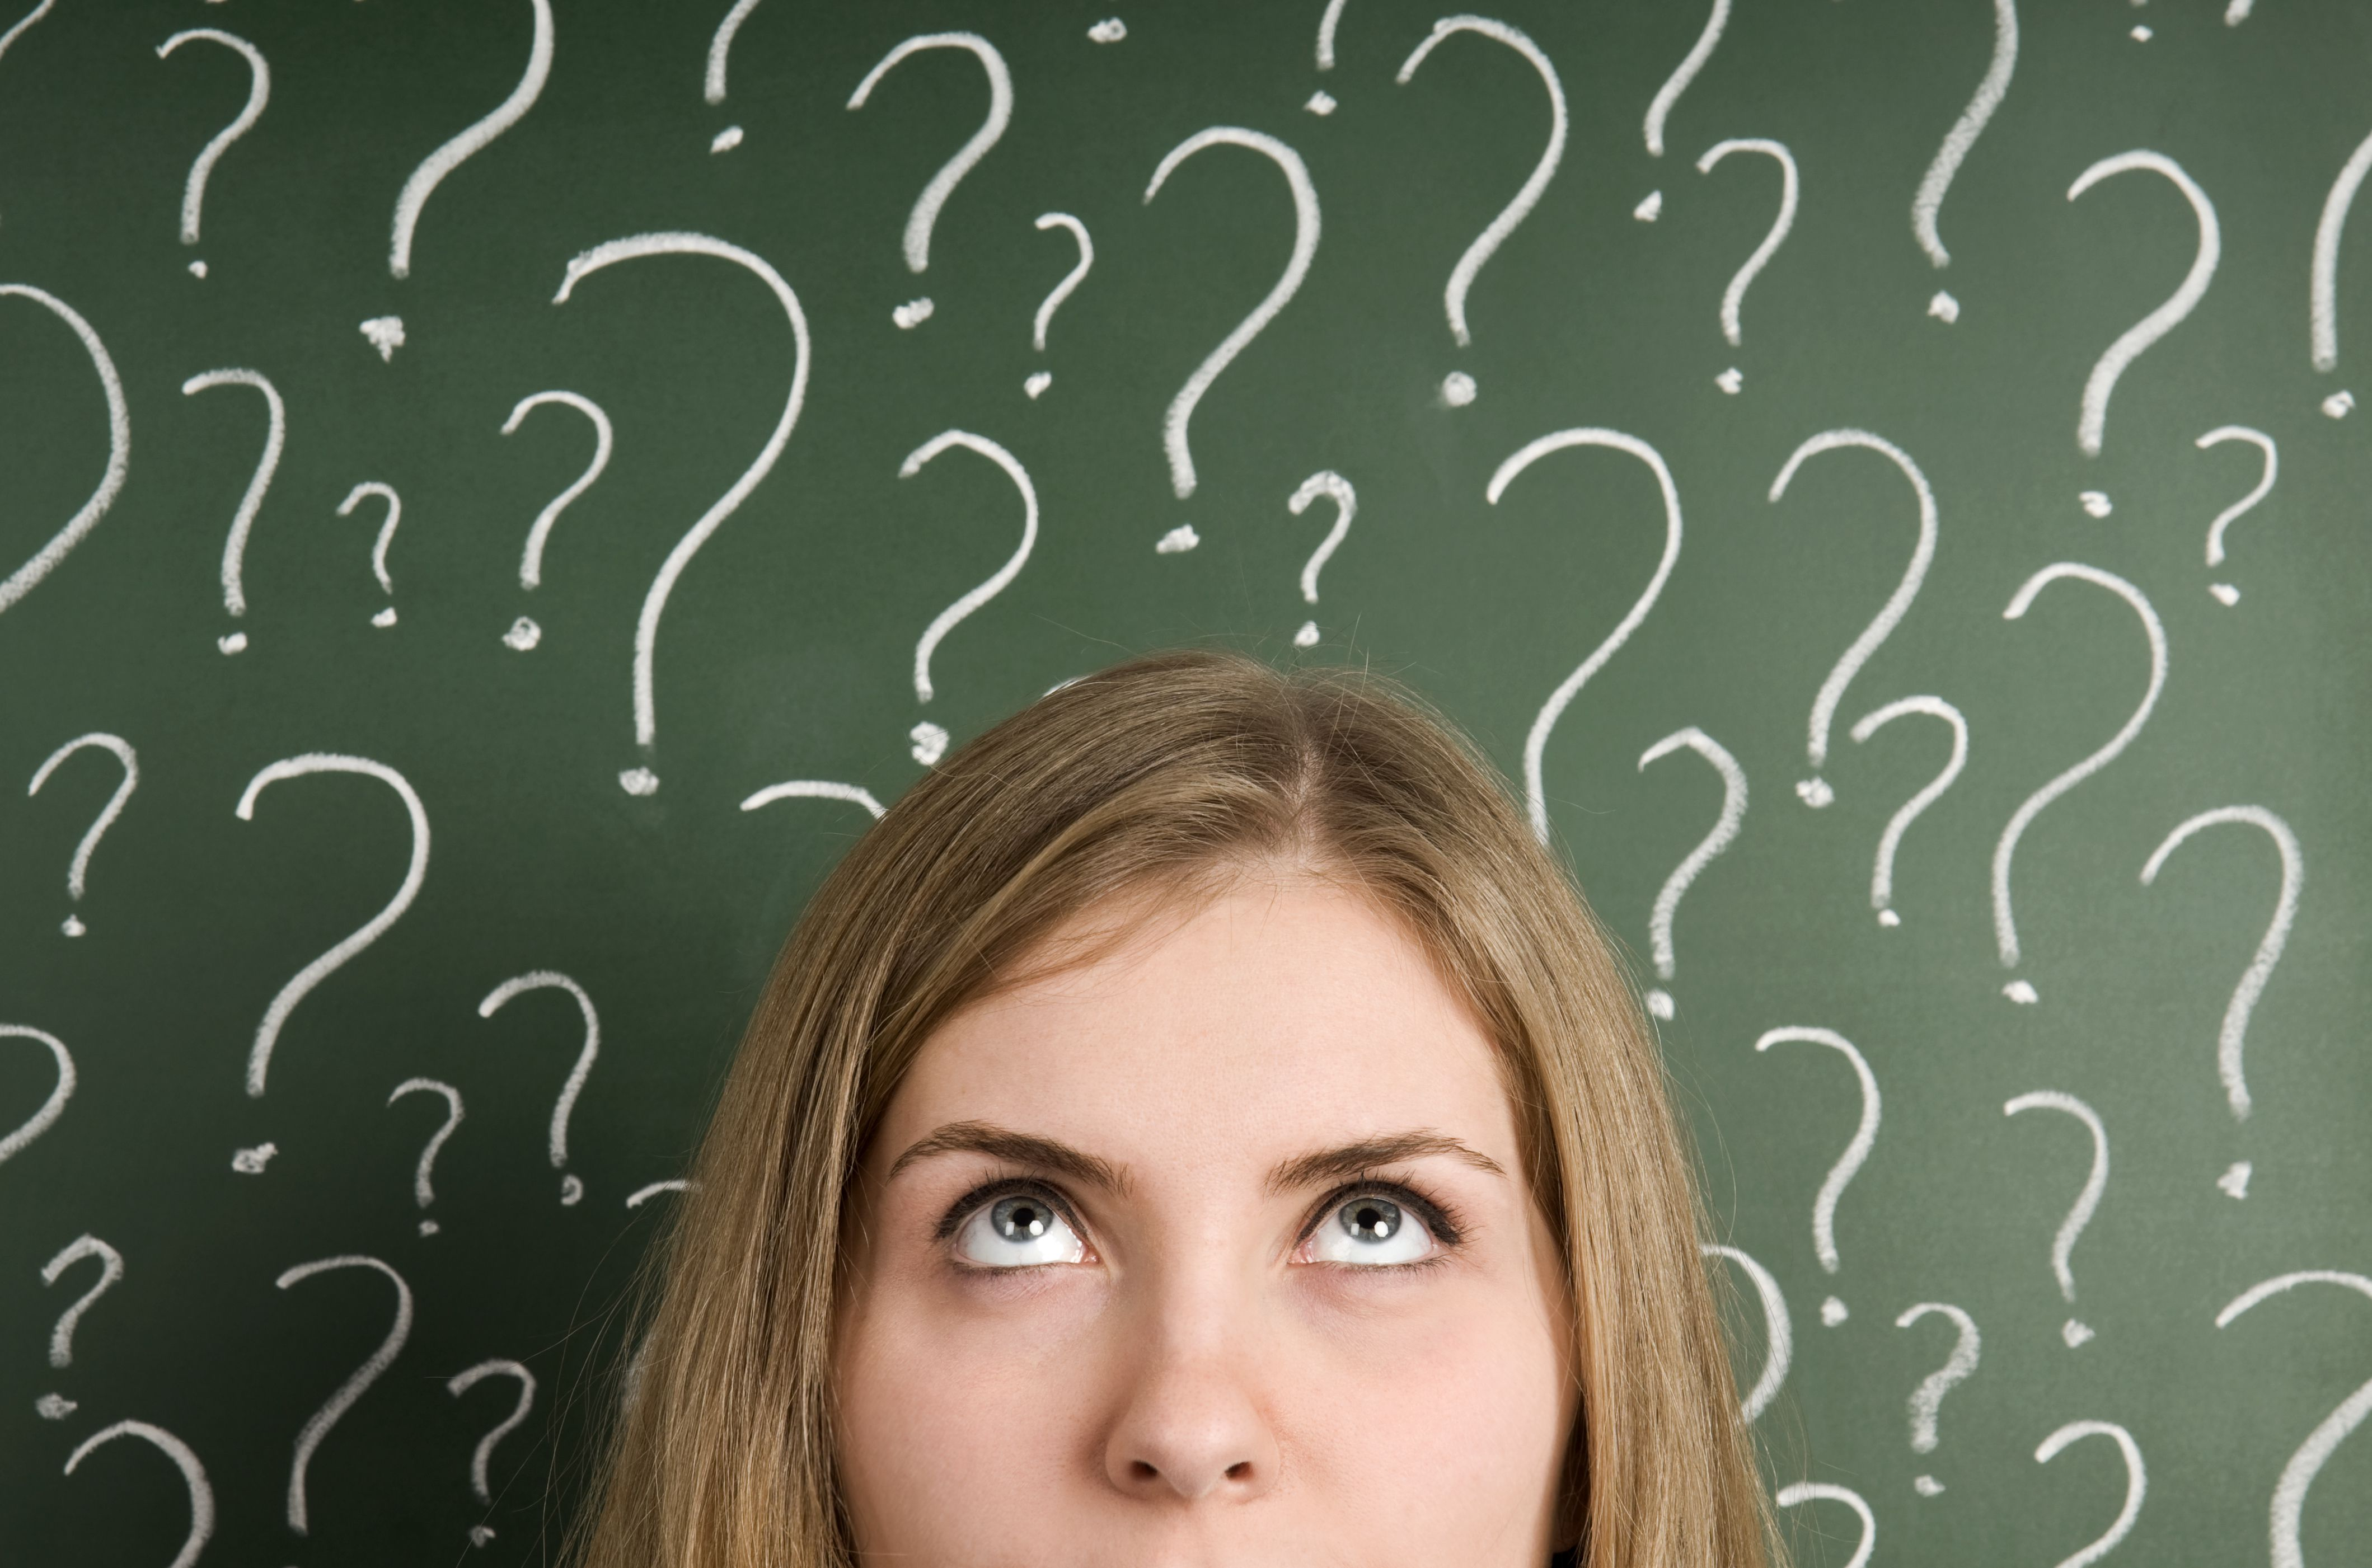 woman looking up at question marks on chalkboard